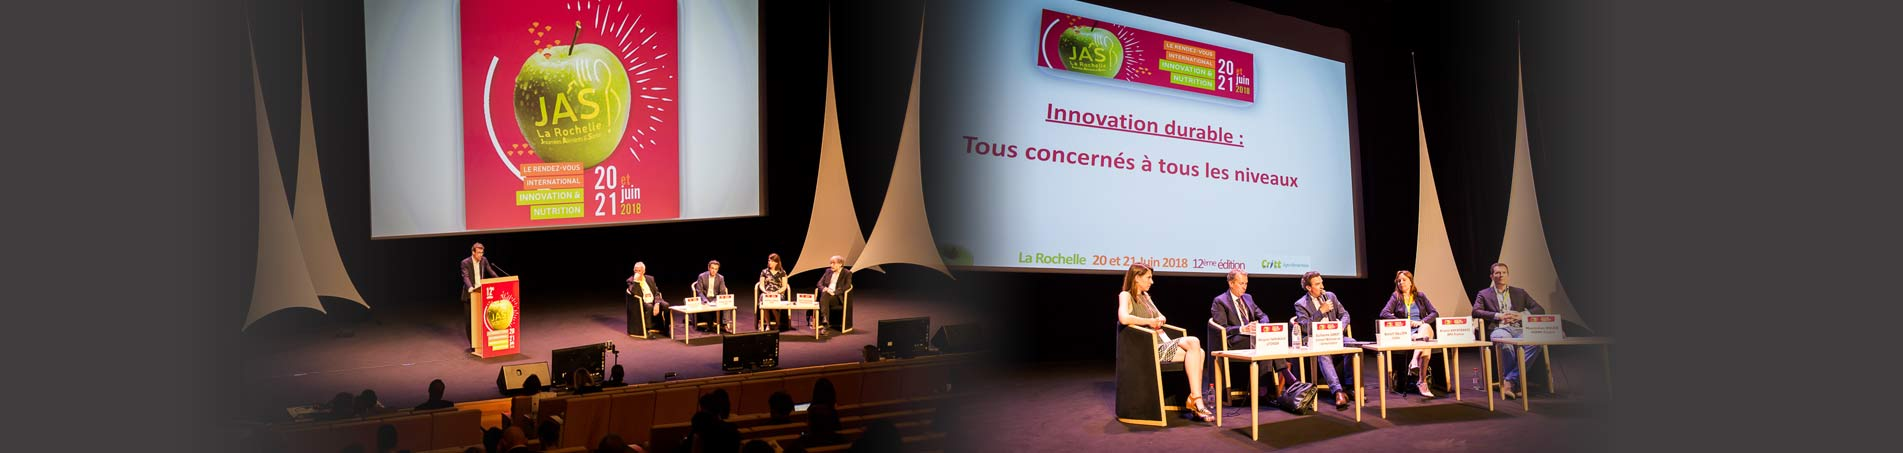 Tables rondes JAS 2016